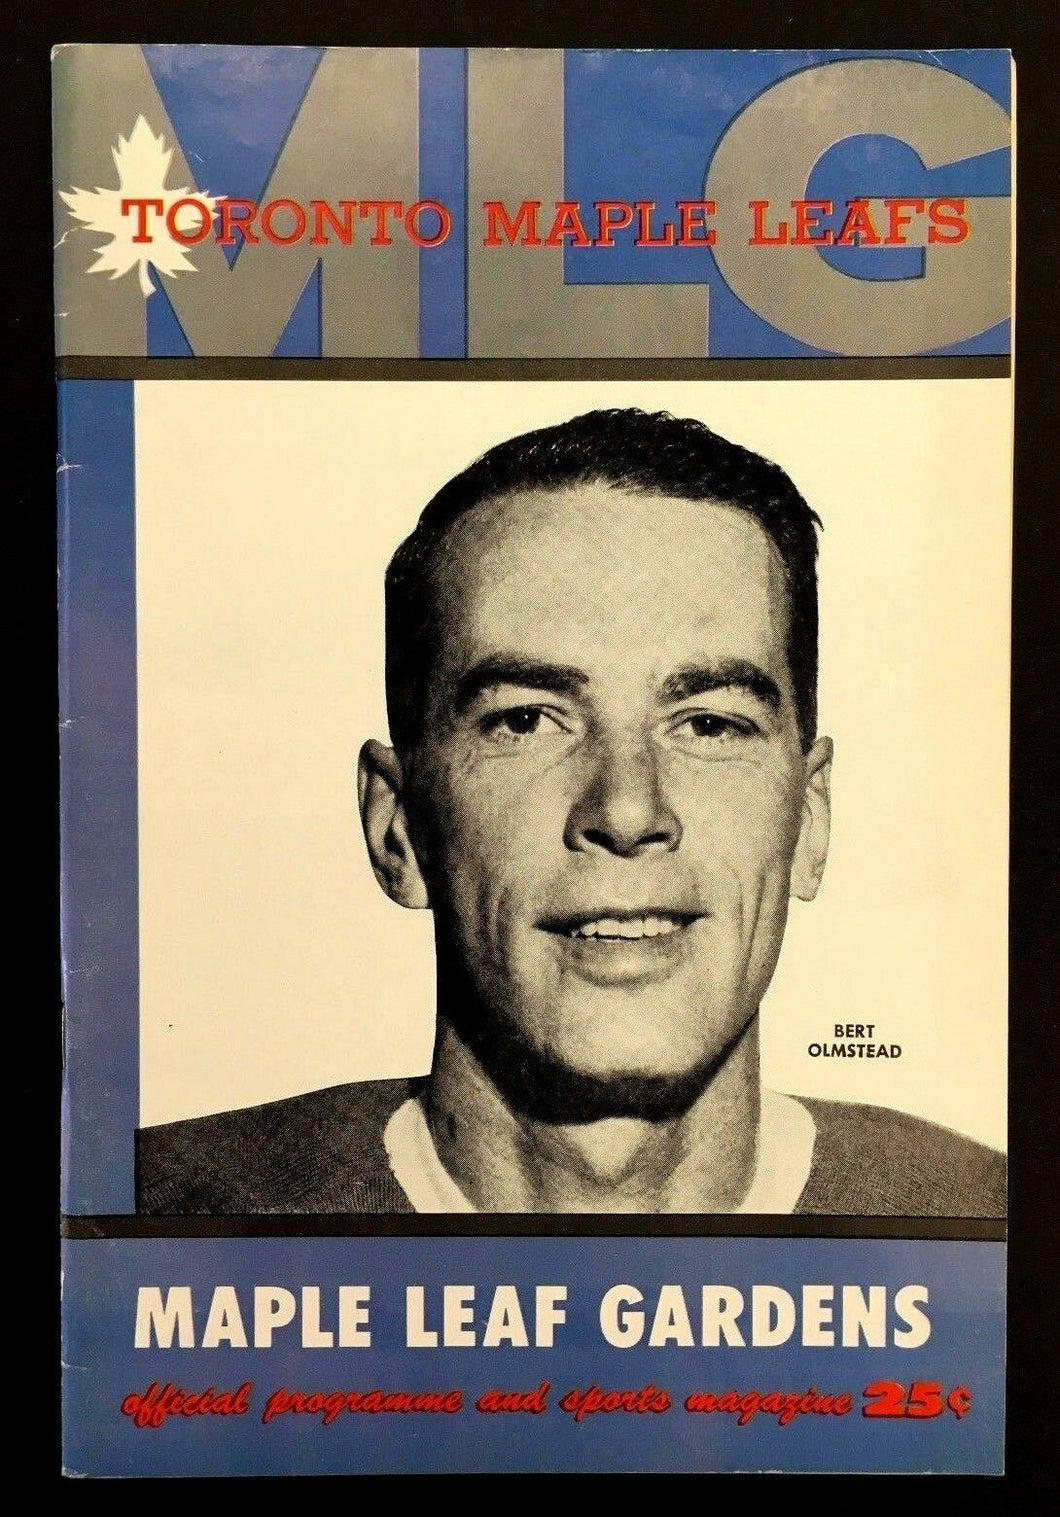 1958 Maple Leaf Gardens NHL Hockey Program VTG Leafs vs Rangers Bert Olmstead